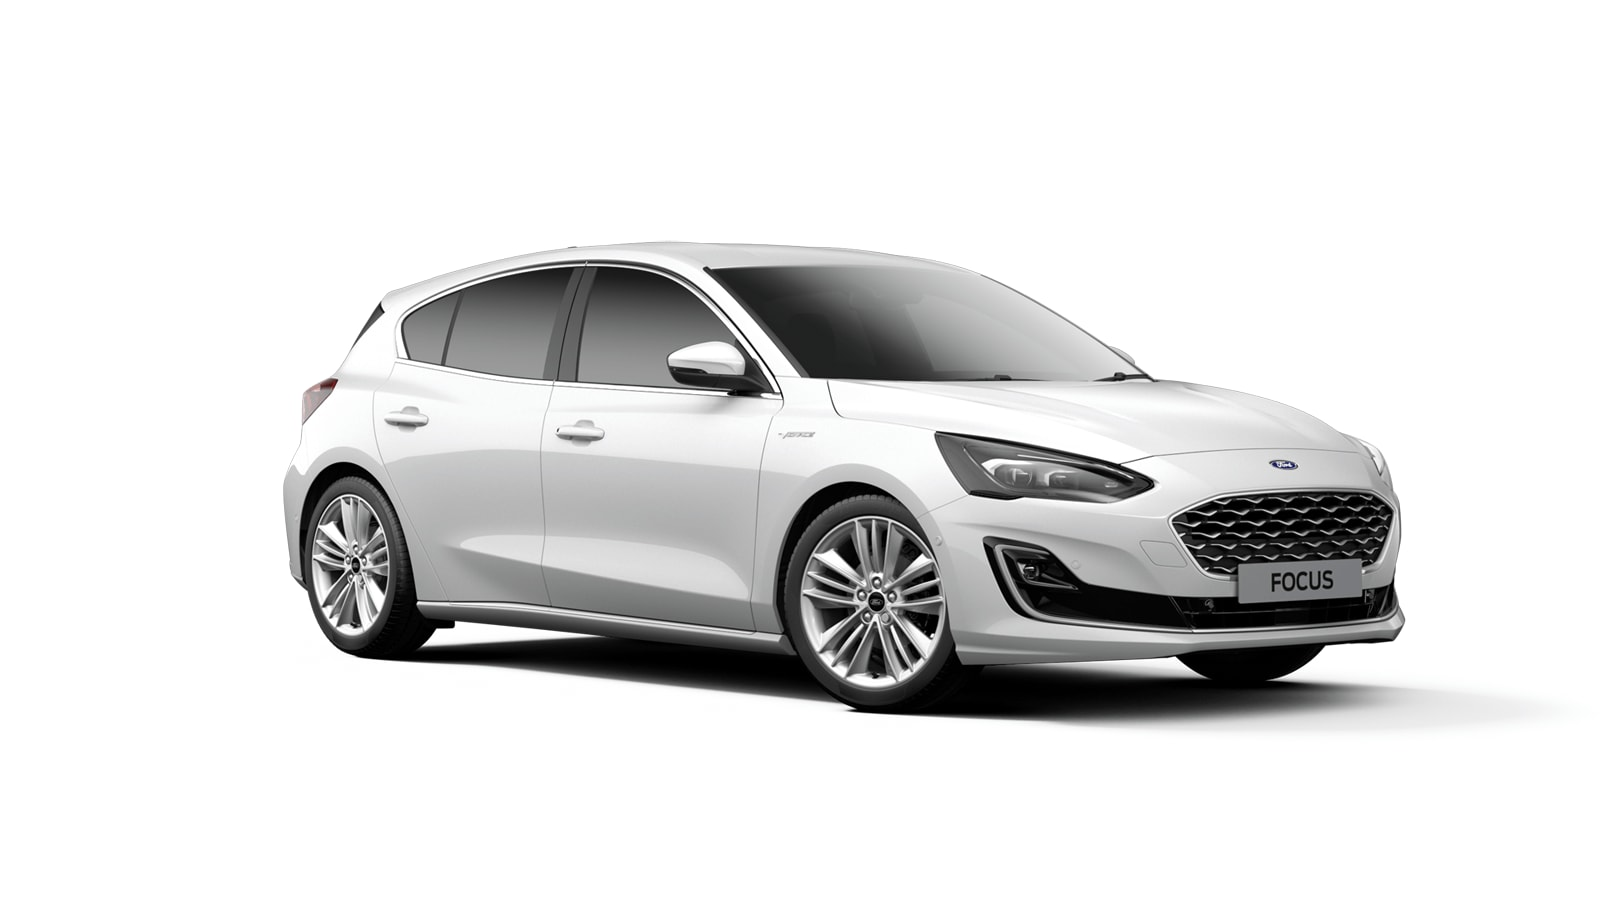 NEW FOCUS MHEV Vignale Edition mHEV